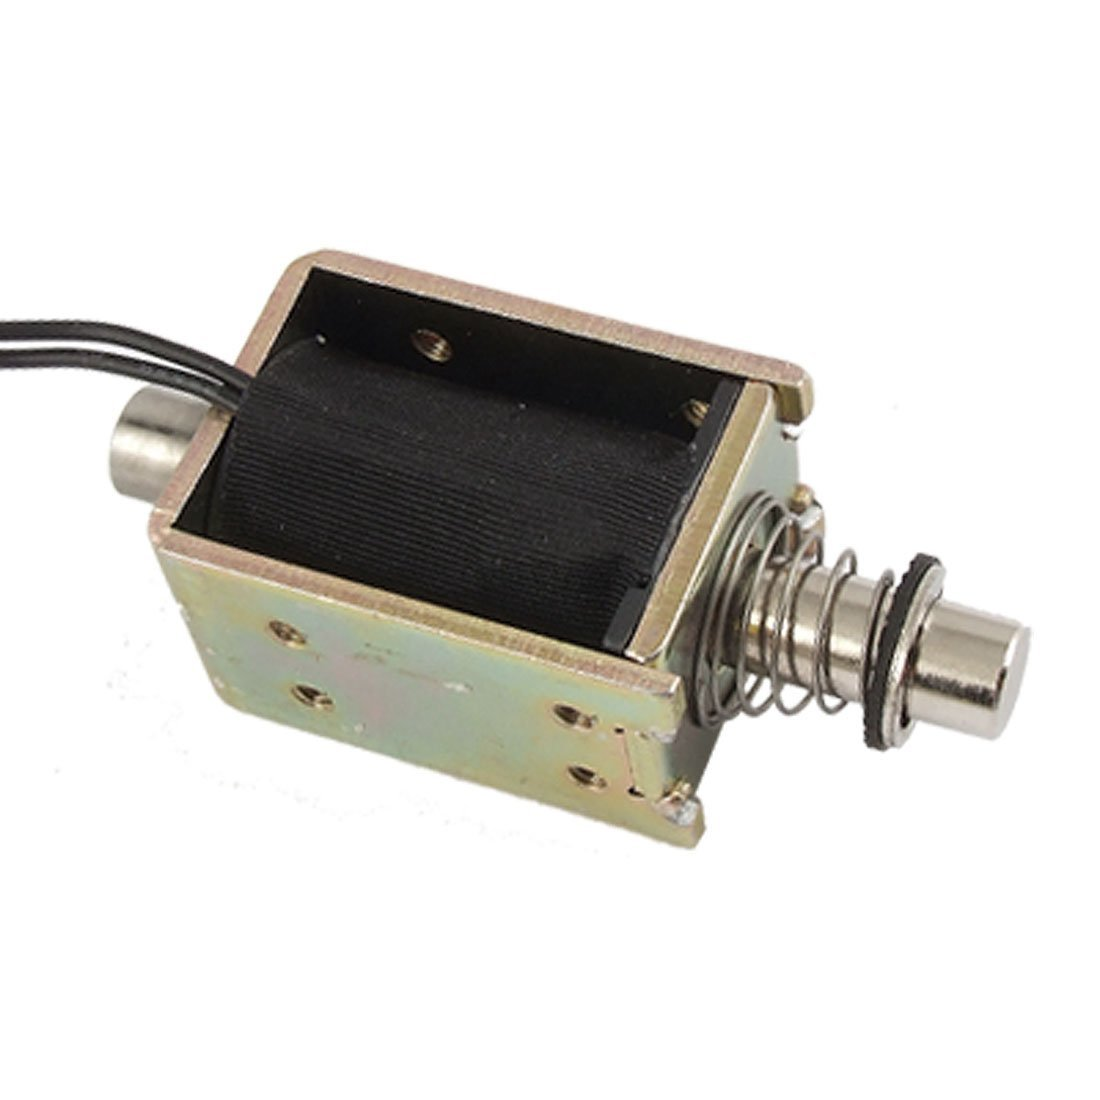 uxcell DC 24V 4mm Stroke Push Type Open Frame Linear Solenoid US-SA-AJD-02037